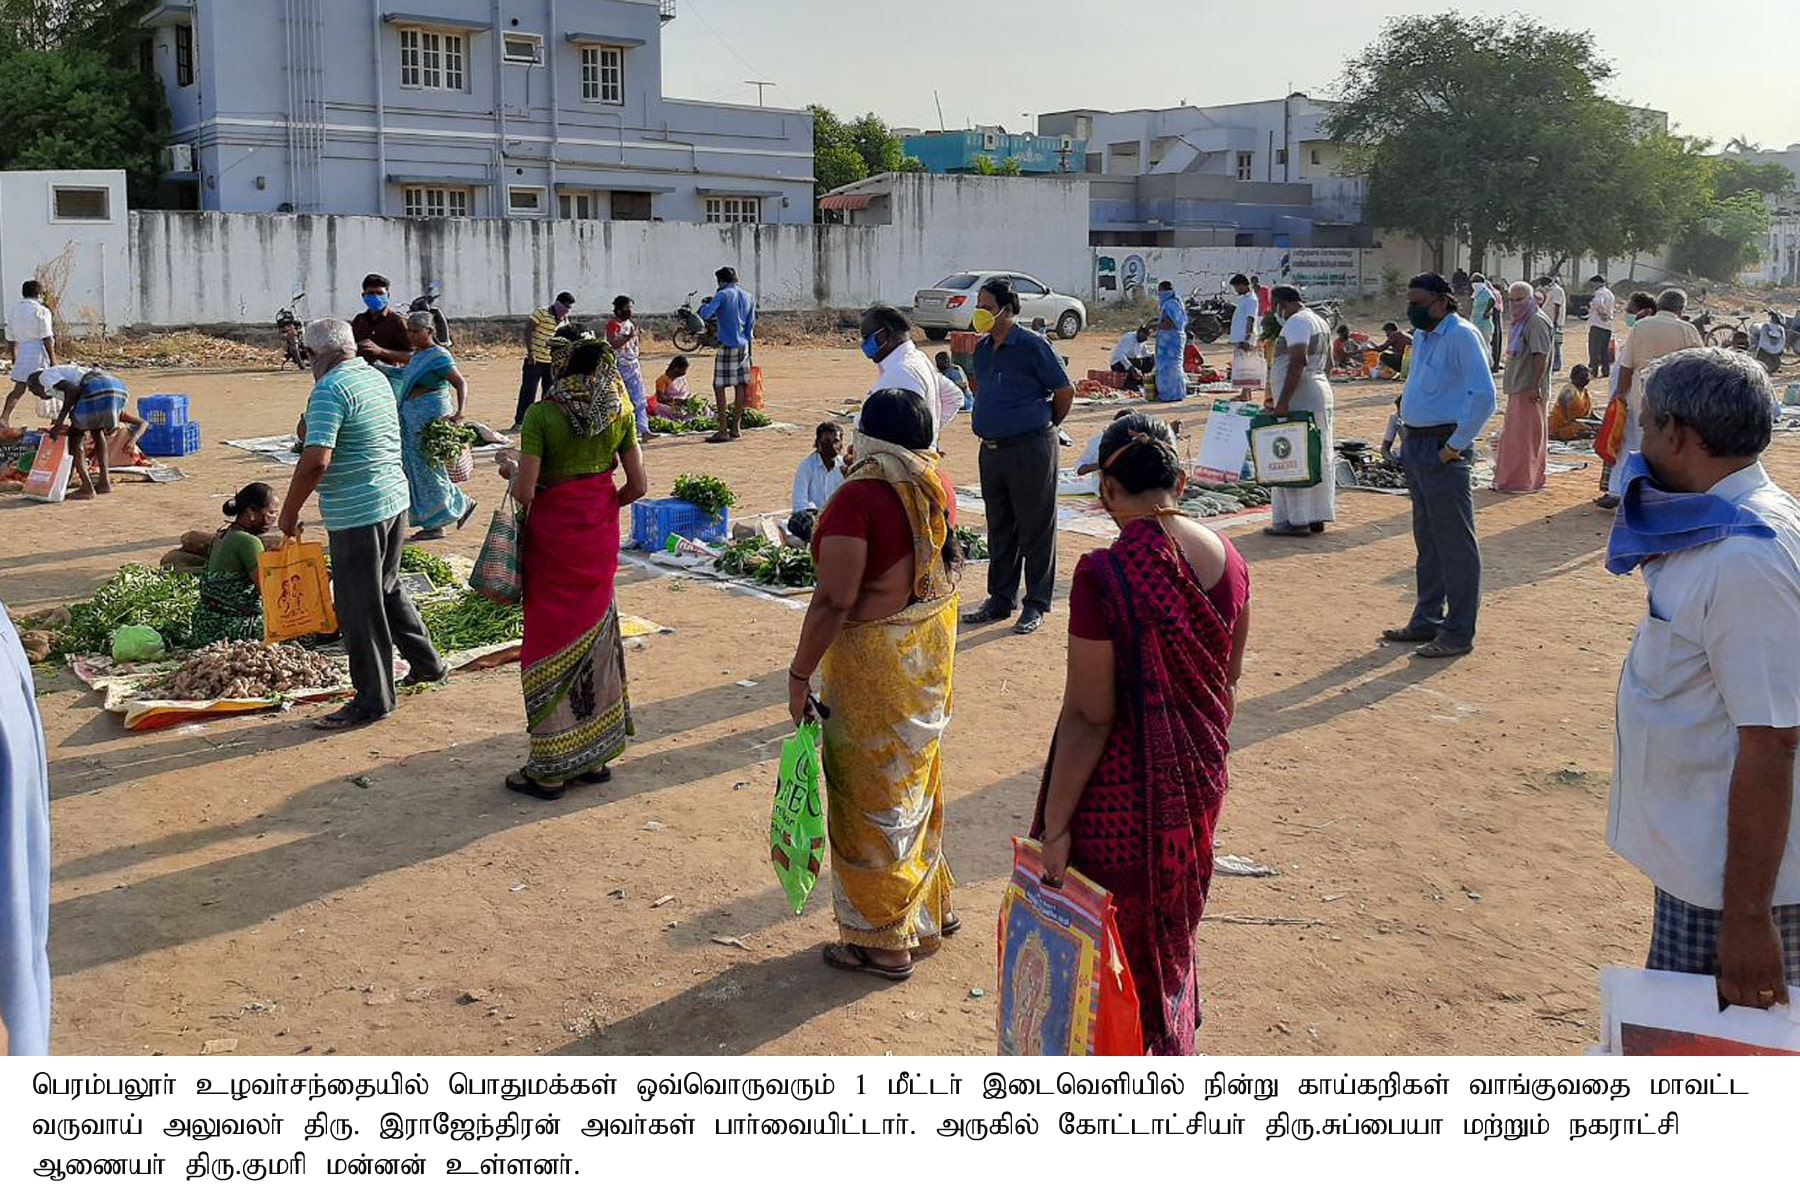 Timings announced for the shops selling Vegetables and Provisions